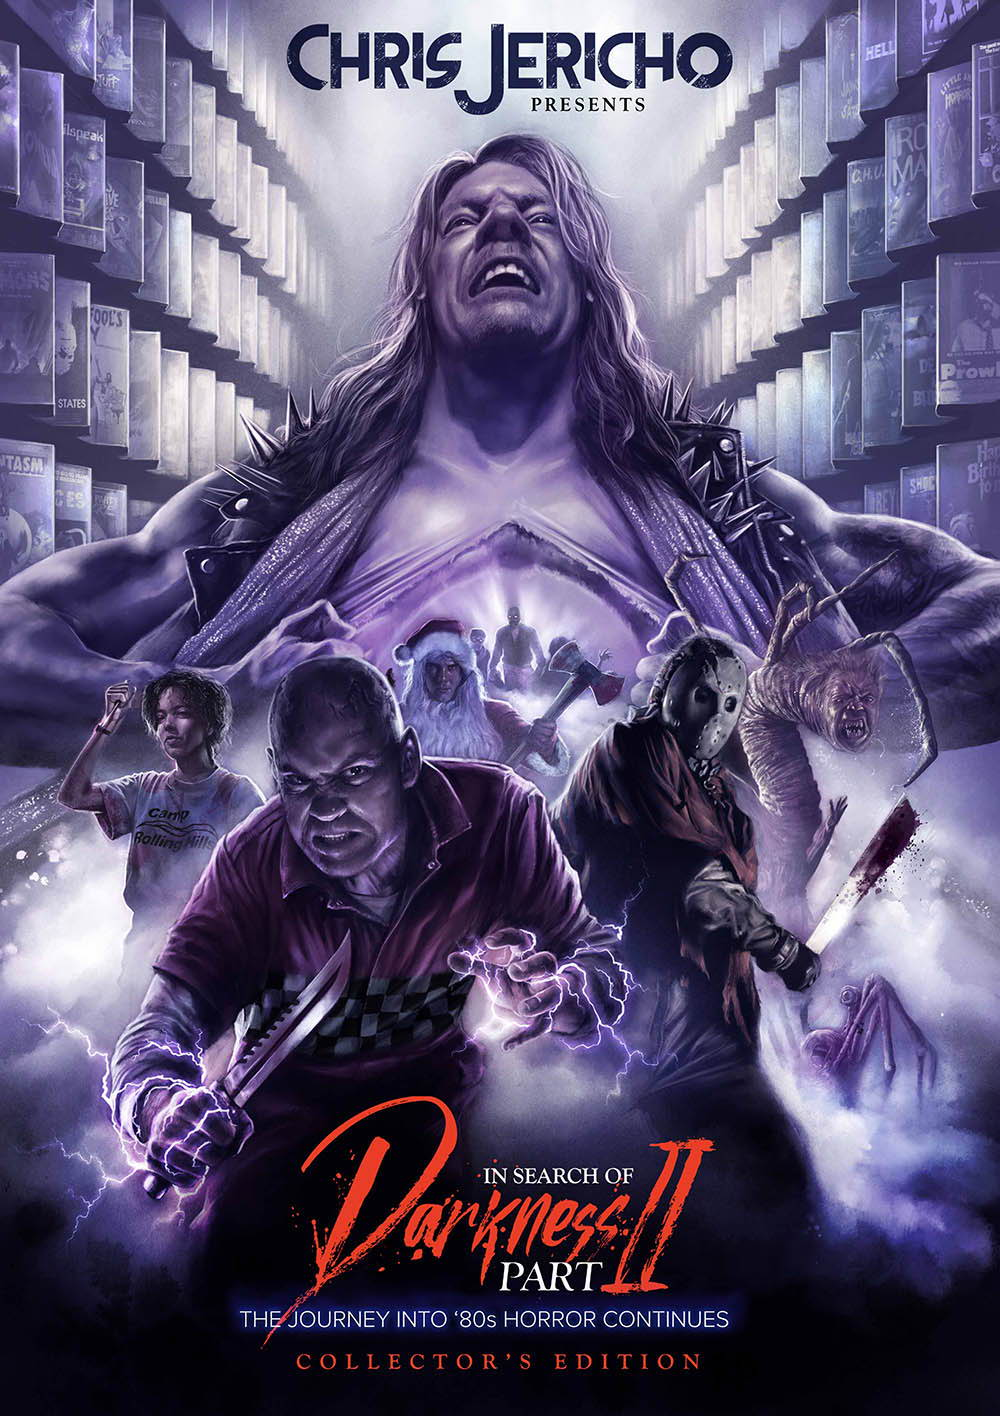 In Search of Darkness: Part II, Chris Jericho poster